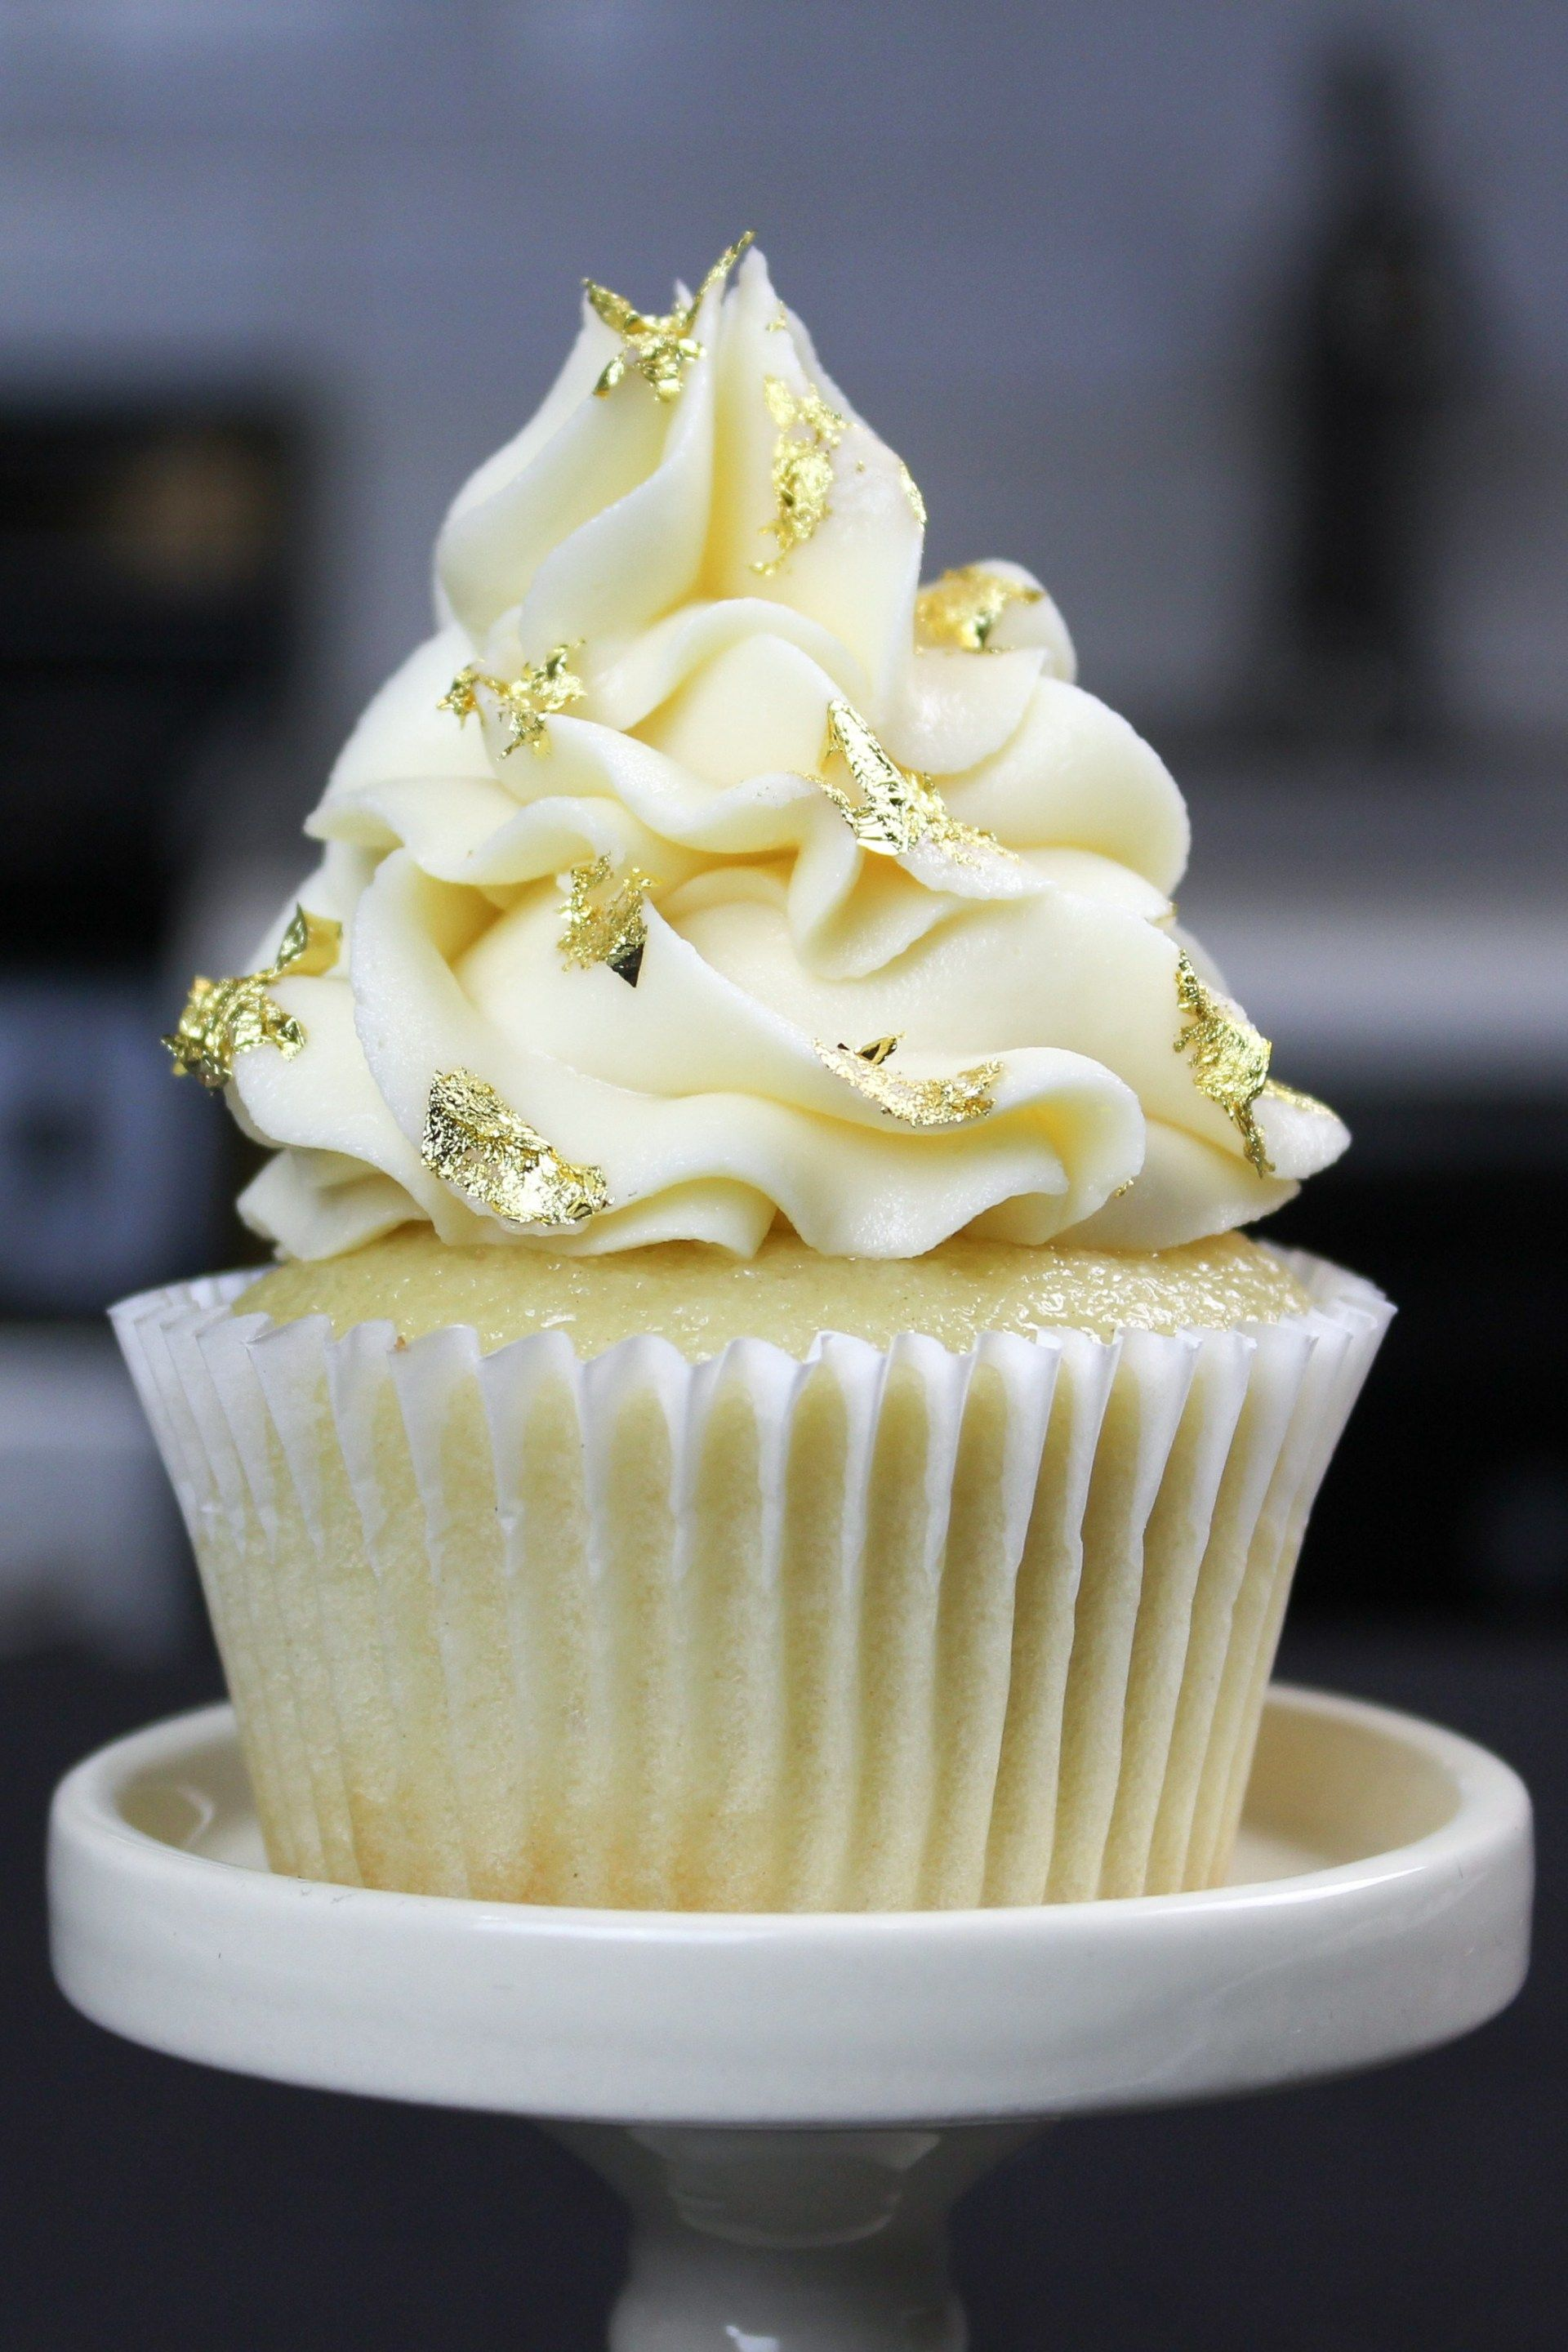 Moist Vanilla Cupcake Recipe Easy Vanilla Cupcakes Moist Vanilla Cupcakes Cupcake Recipes